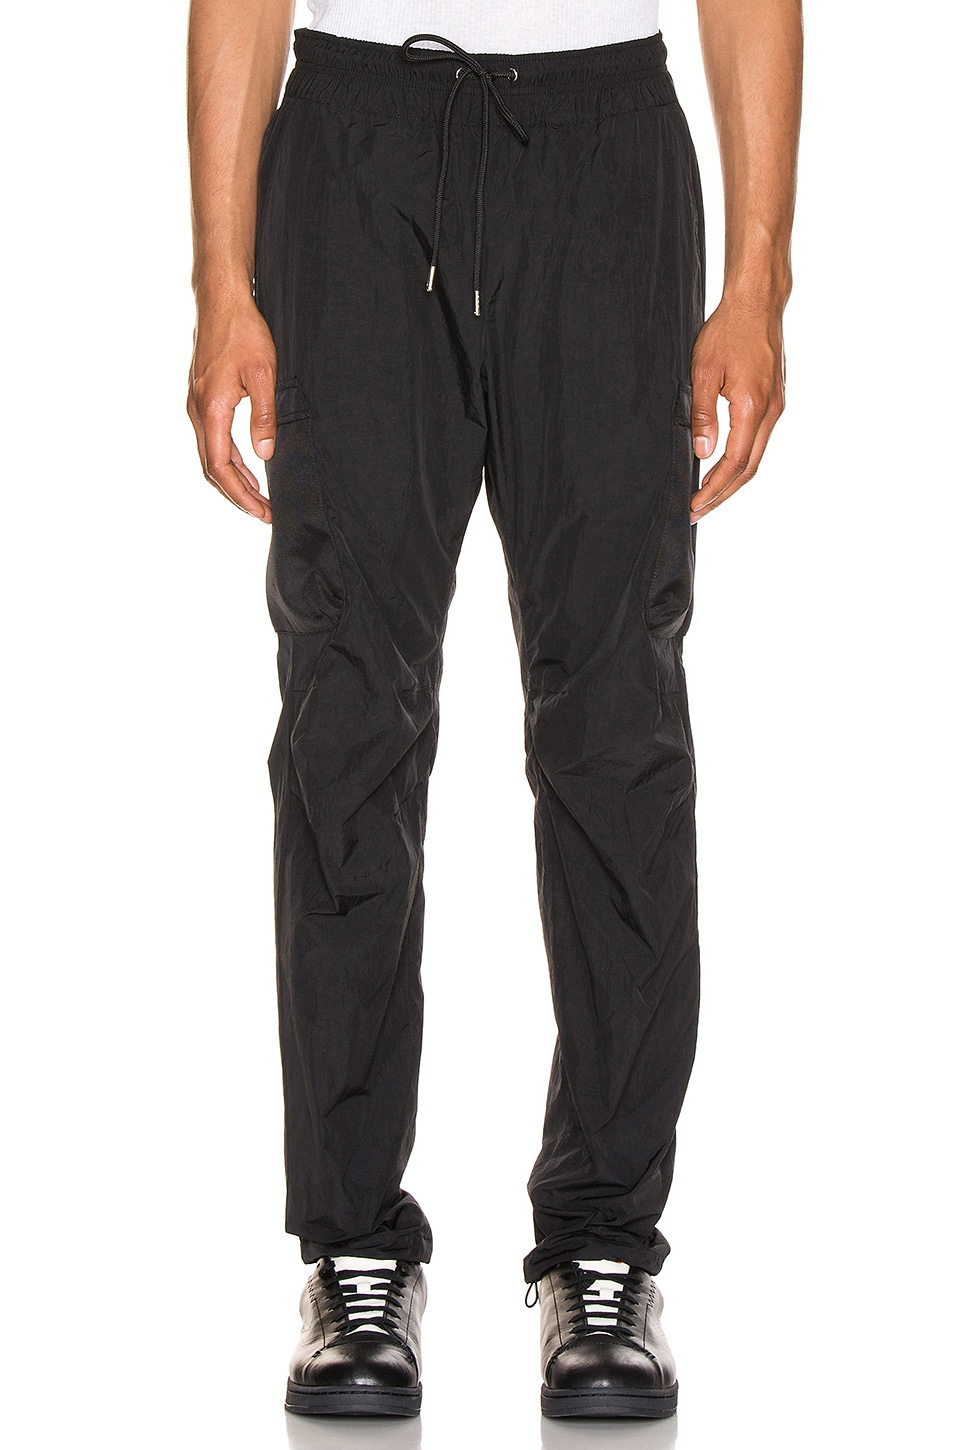 JOHN ELLIOTT Nylon Cargo Pants in Black